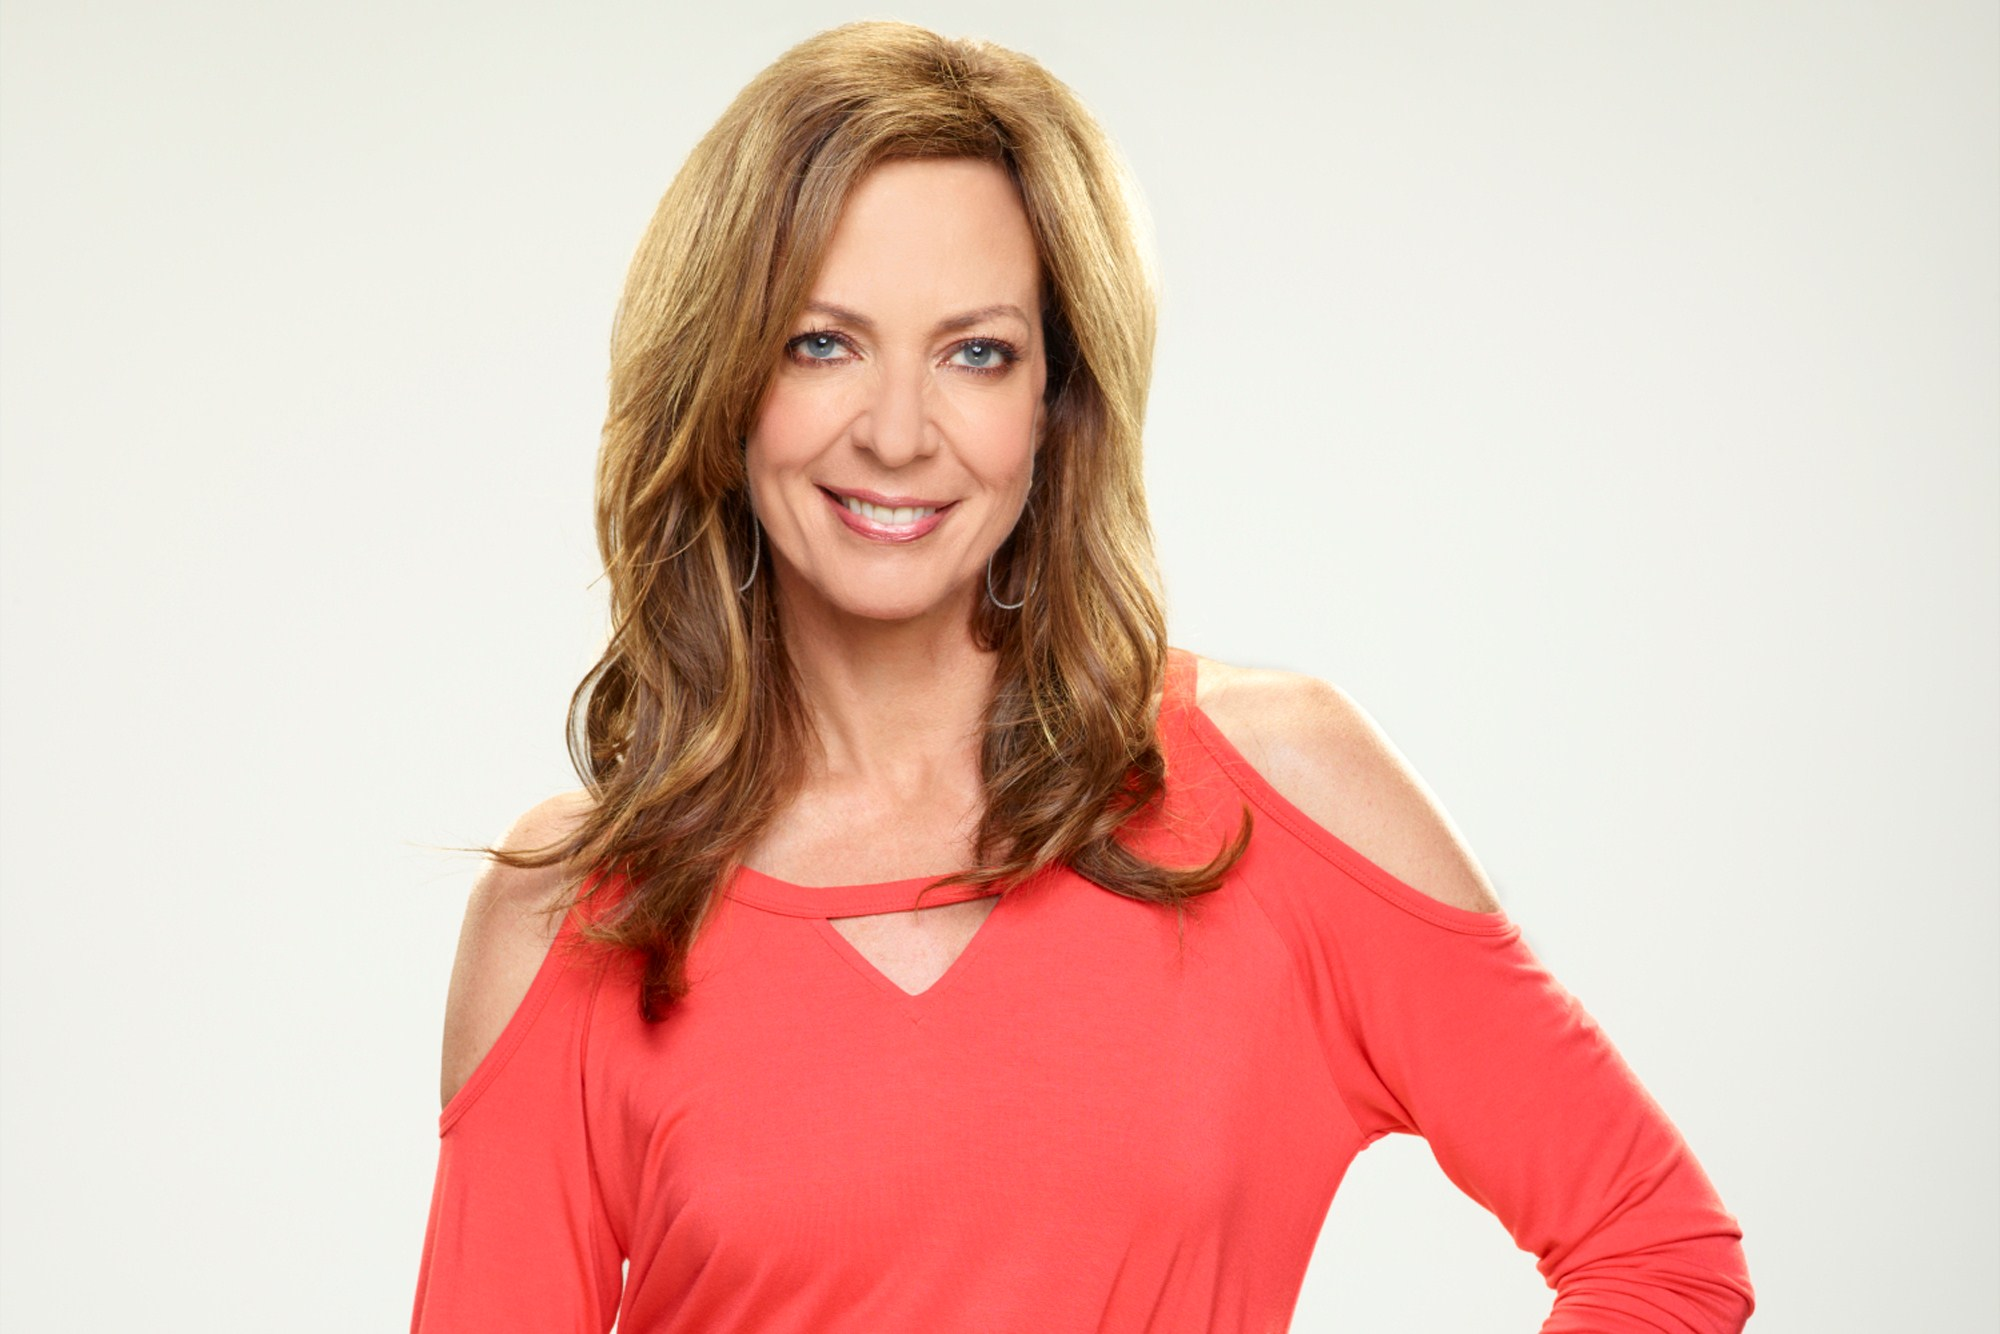 Allison Janney Smile Wallpaper 58185 2000x1334 px 2000x1334